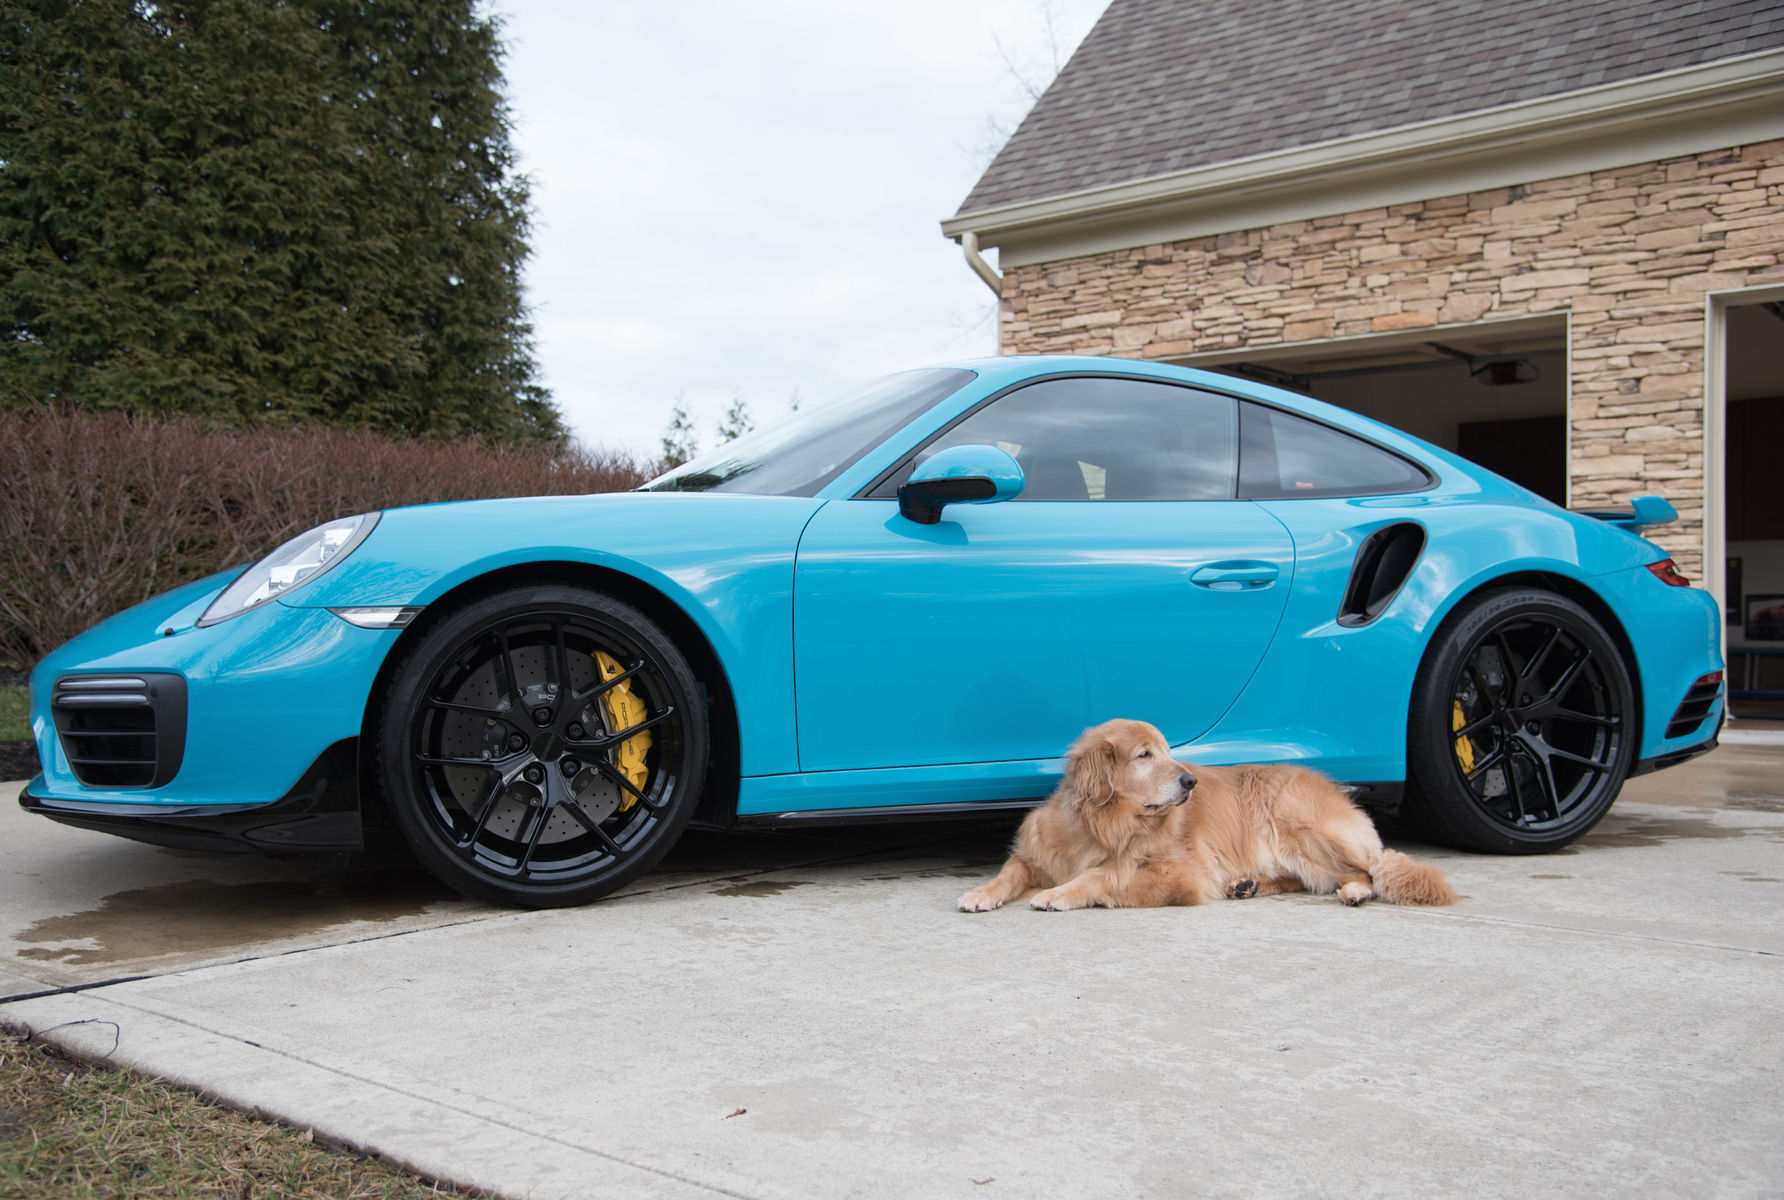 2017 Porsche 911 | Mike Martin's Maui Blue 991 Porsche 911 Turbo S on Forgeline One Piece Forged Monoblock VX1R Wheels